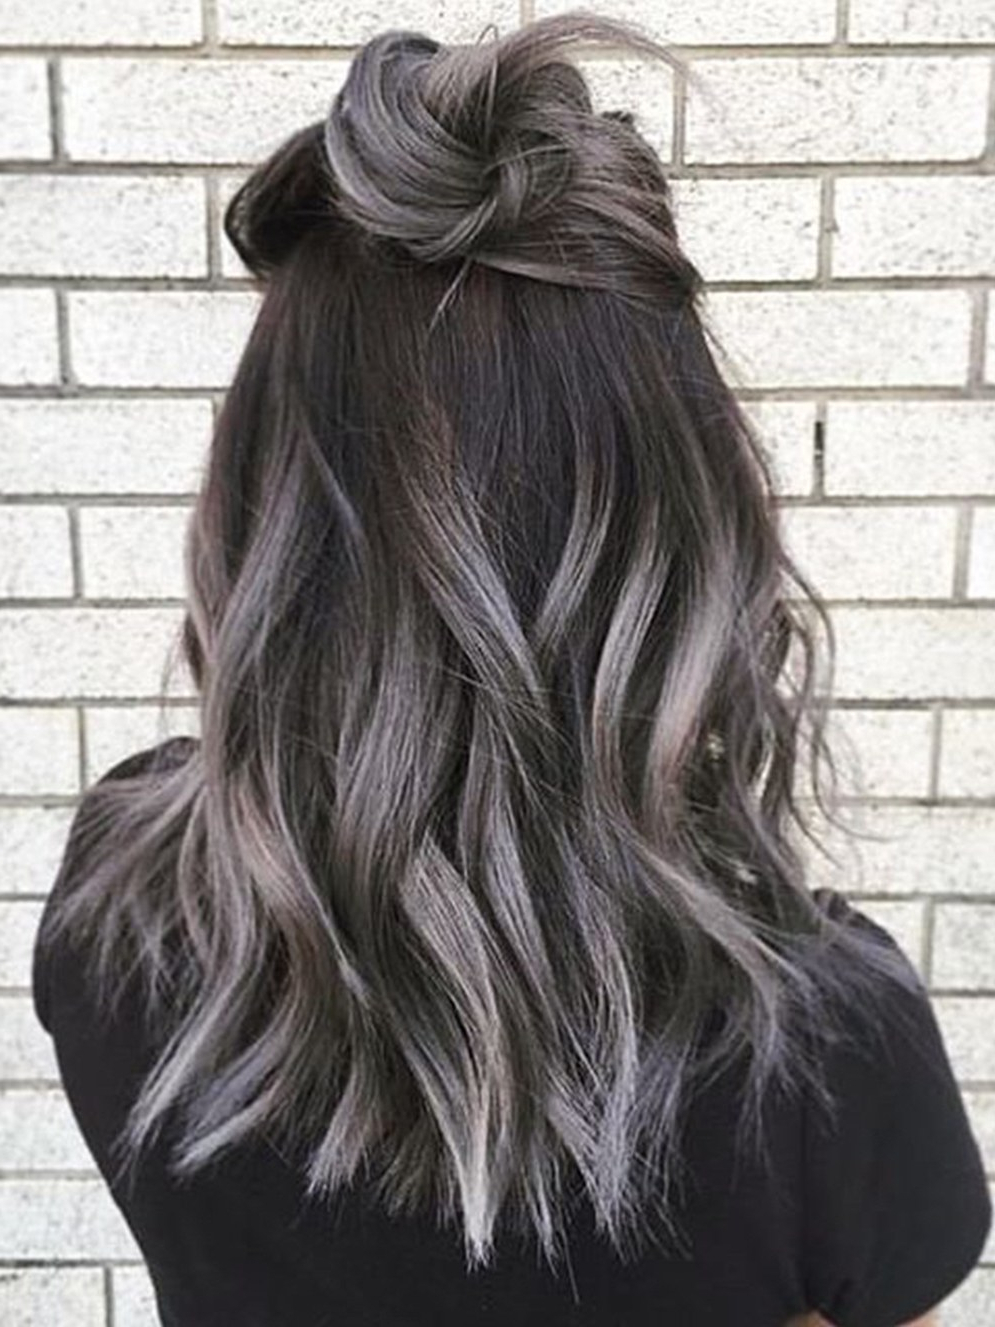 Current Medium Hairstyles For Women With Gray Hair Intended For The Gray Hair Trend: 32 Instagram Worthy Gray Ombré Hairstyles – Allure (View 2 of 20)